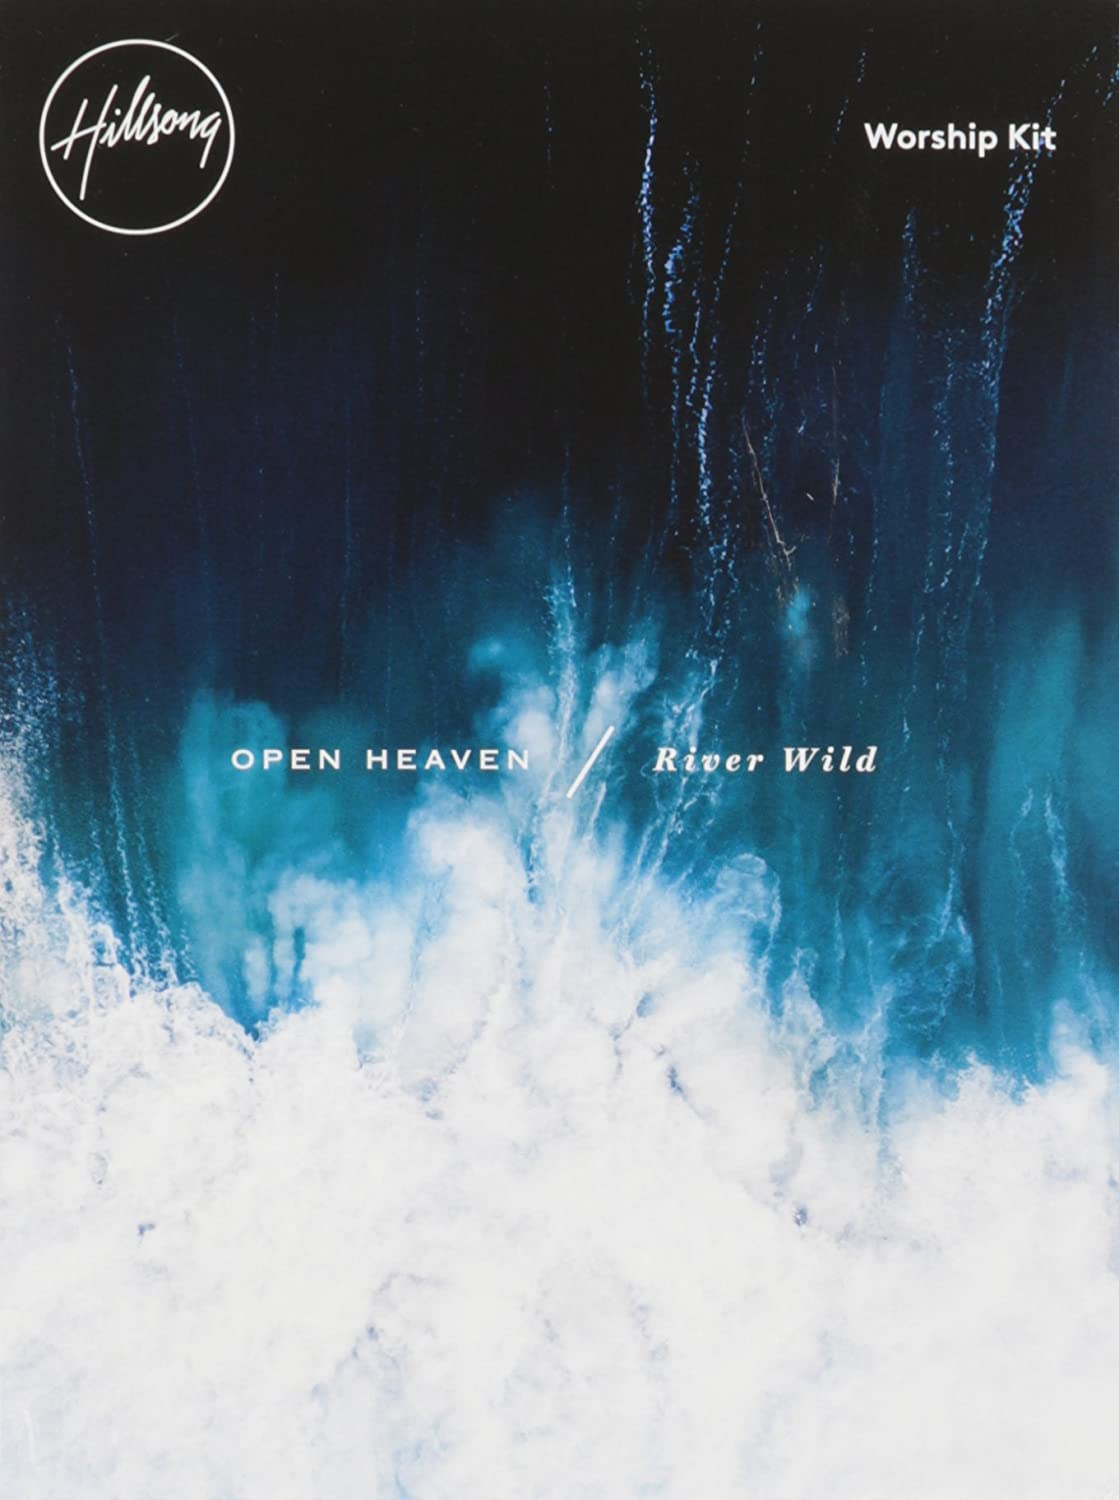 Open Heaven River Worship Max 52% OFFicial shop OFF Kit Wild